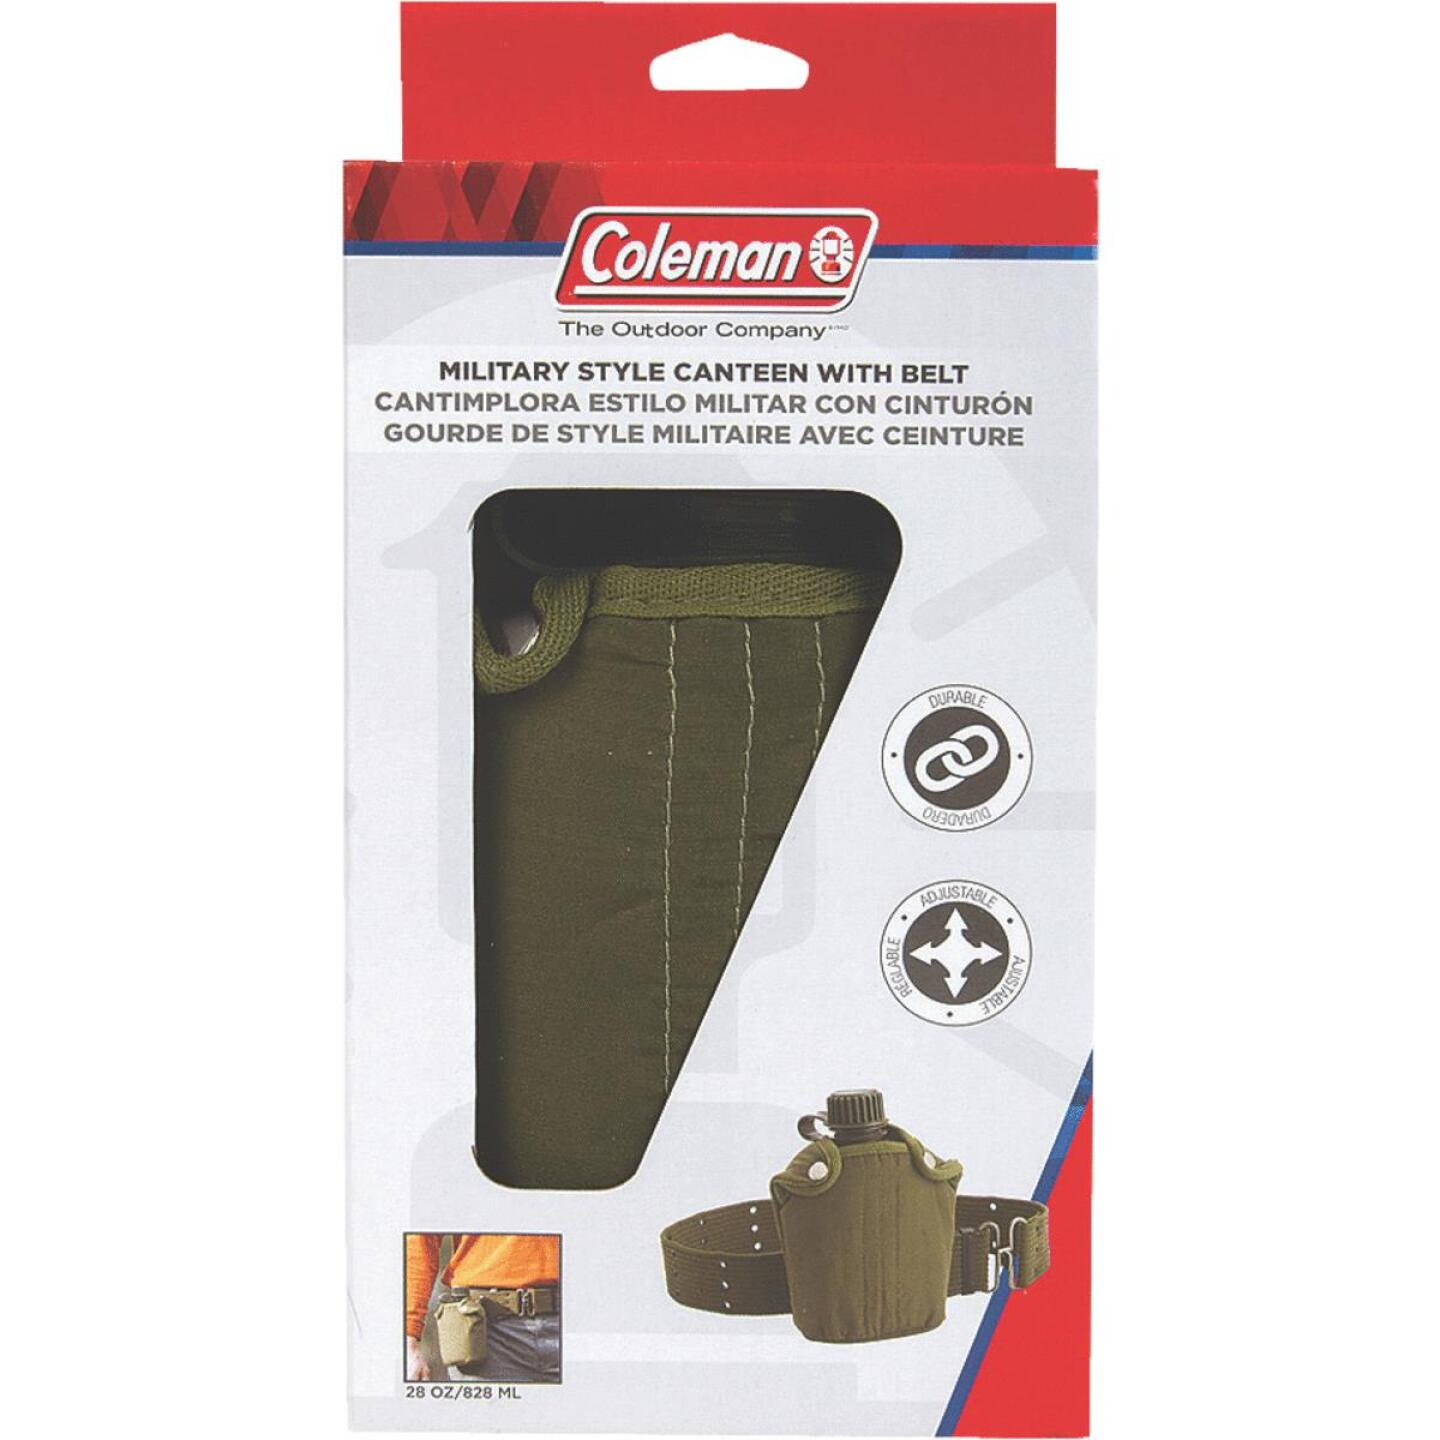 Coleman 28 Oz. Military Style Canteen Image 2